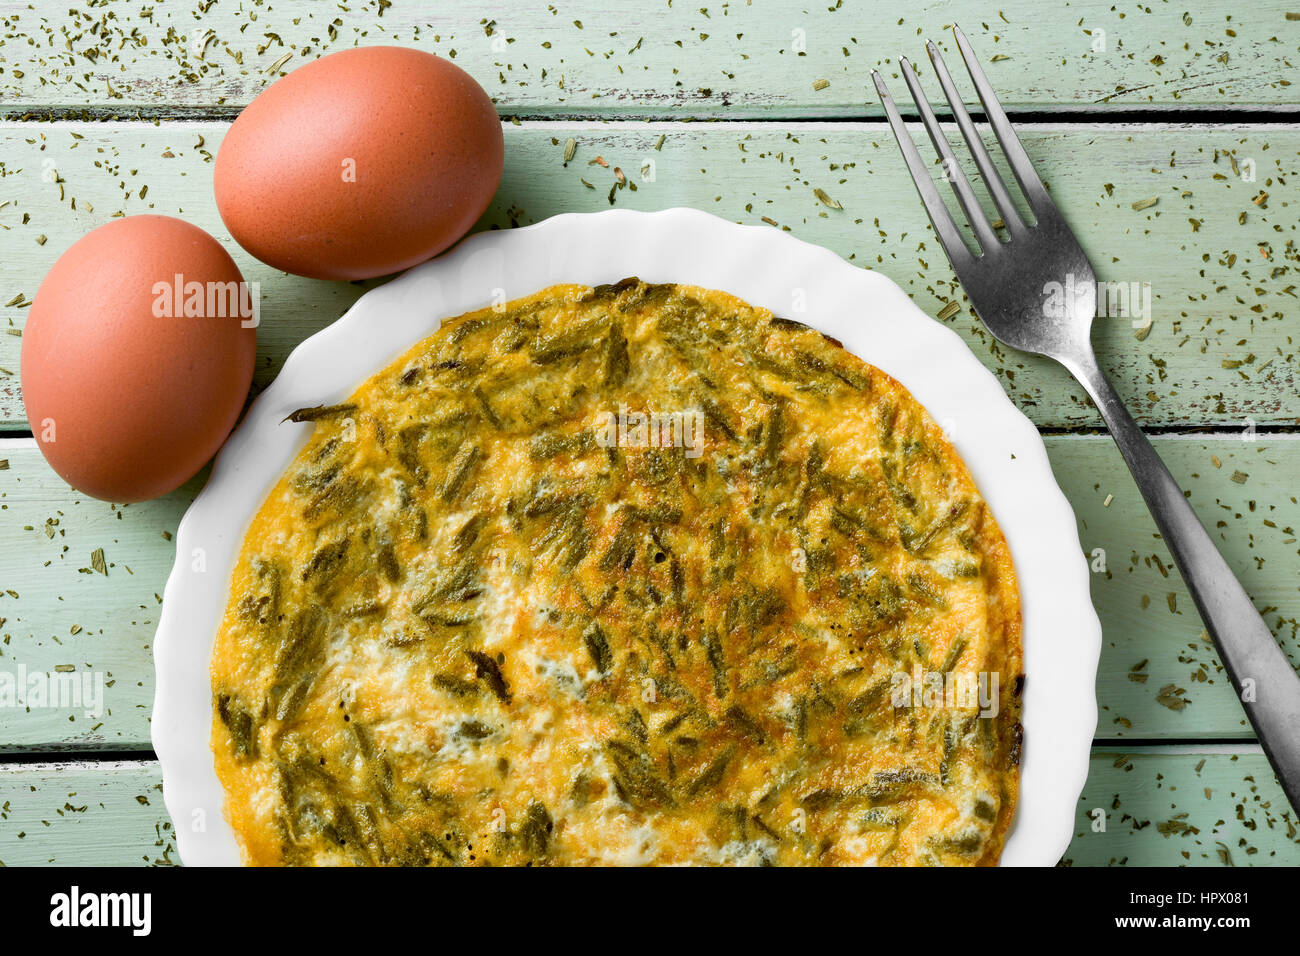 a spanish tortilla de esparragos, an omelet made with wild asparagus, and some eggs on a pale green rustic wooden - Stock Image